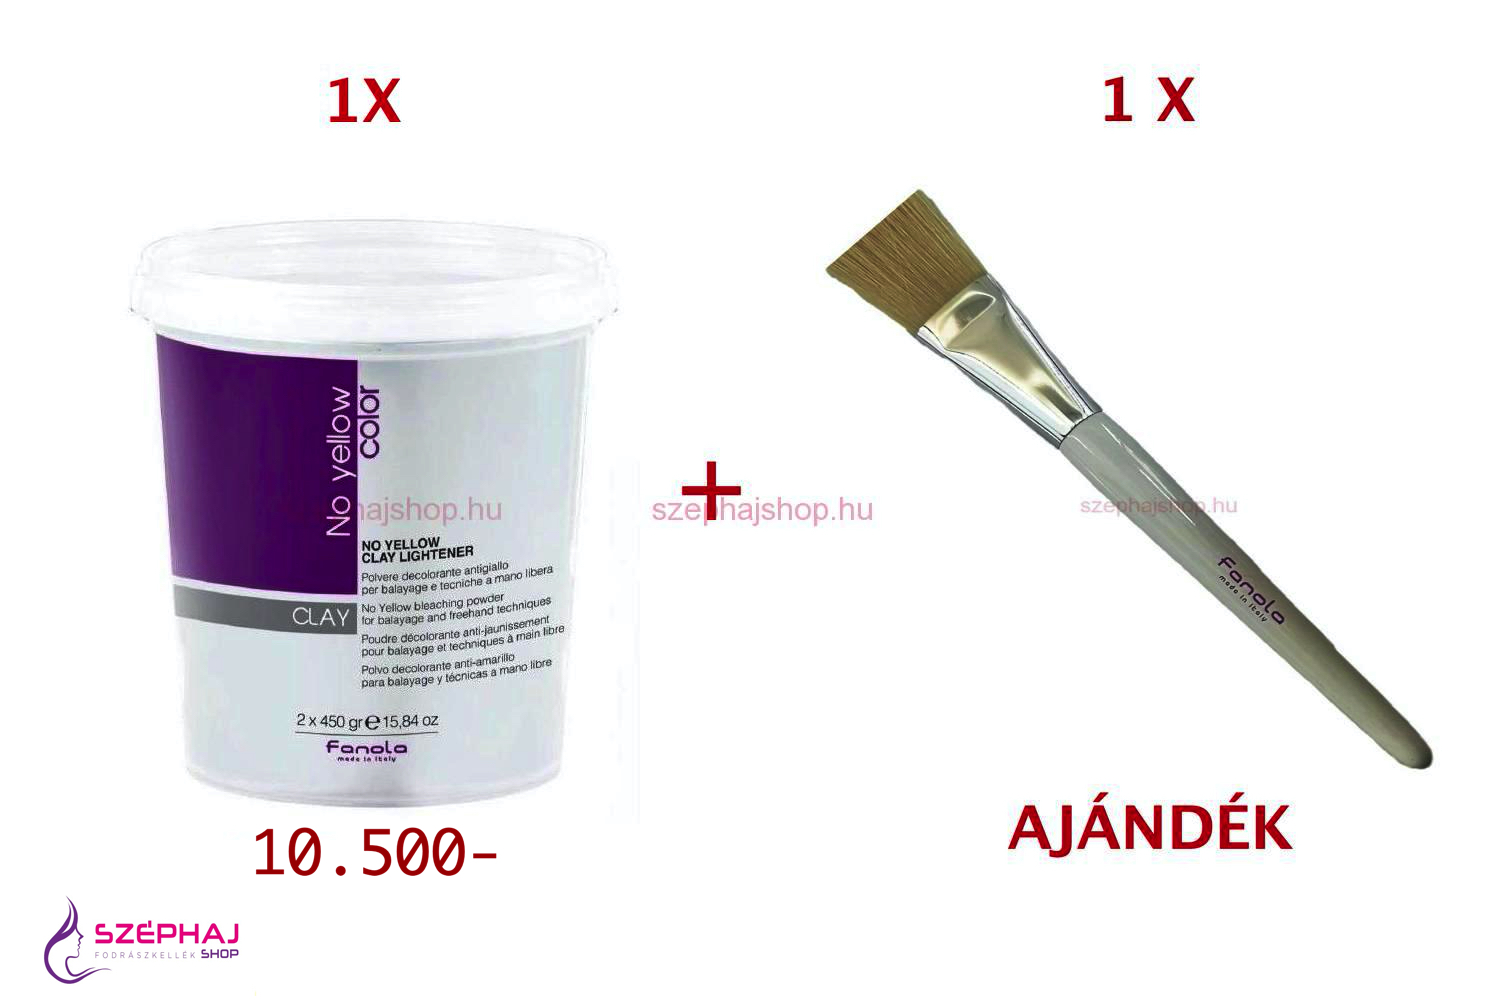 FANOLA No Yellow Color Clay Lightener Bleaching Powder 2x450 g 2+ AKCIÓ